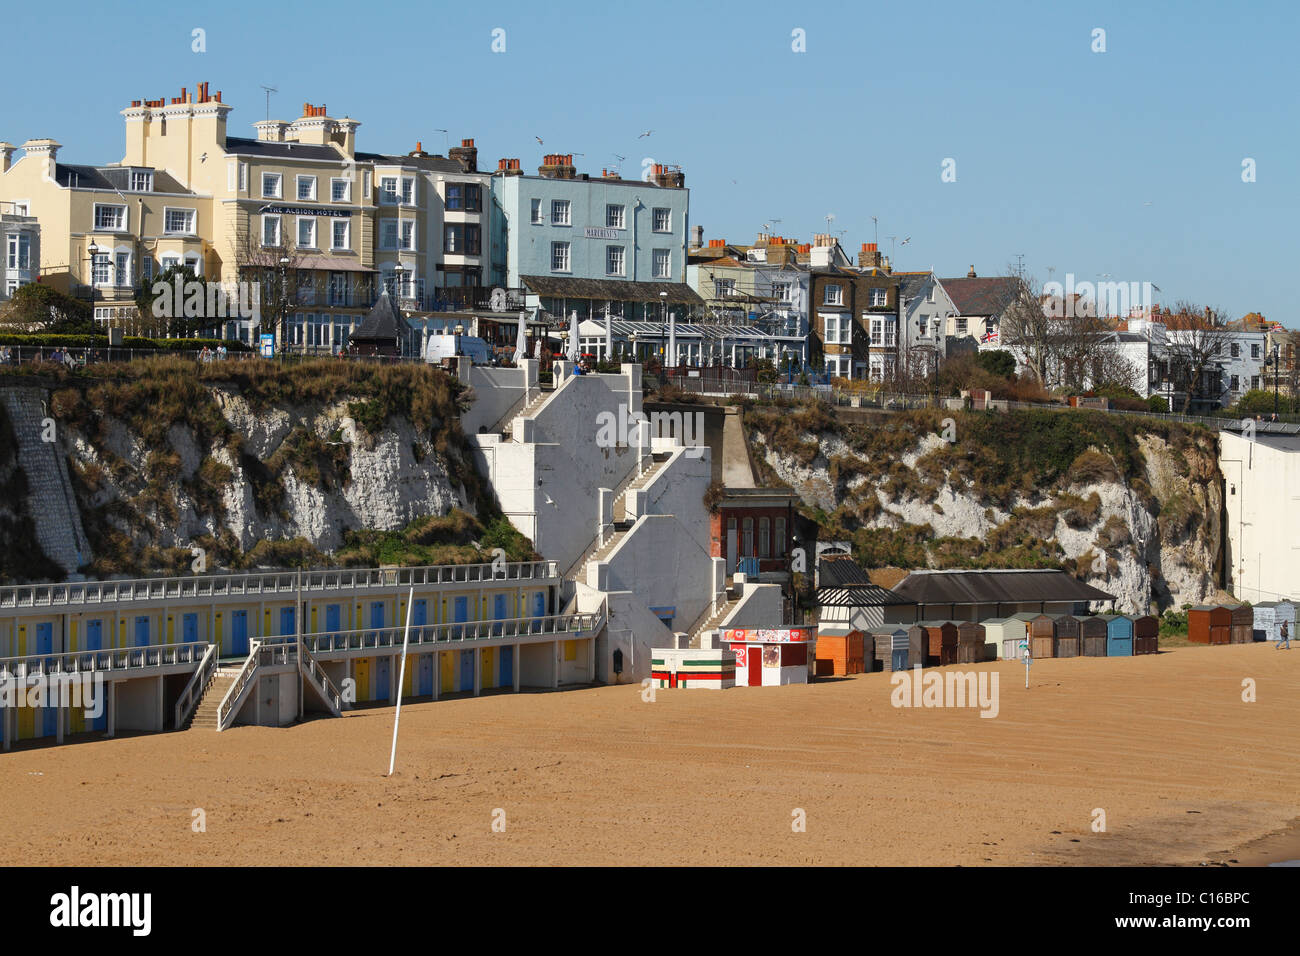 Broadstairs beach with seagulls flying above - Stock Image